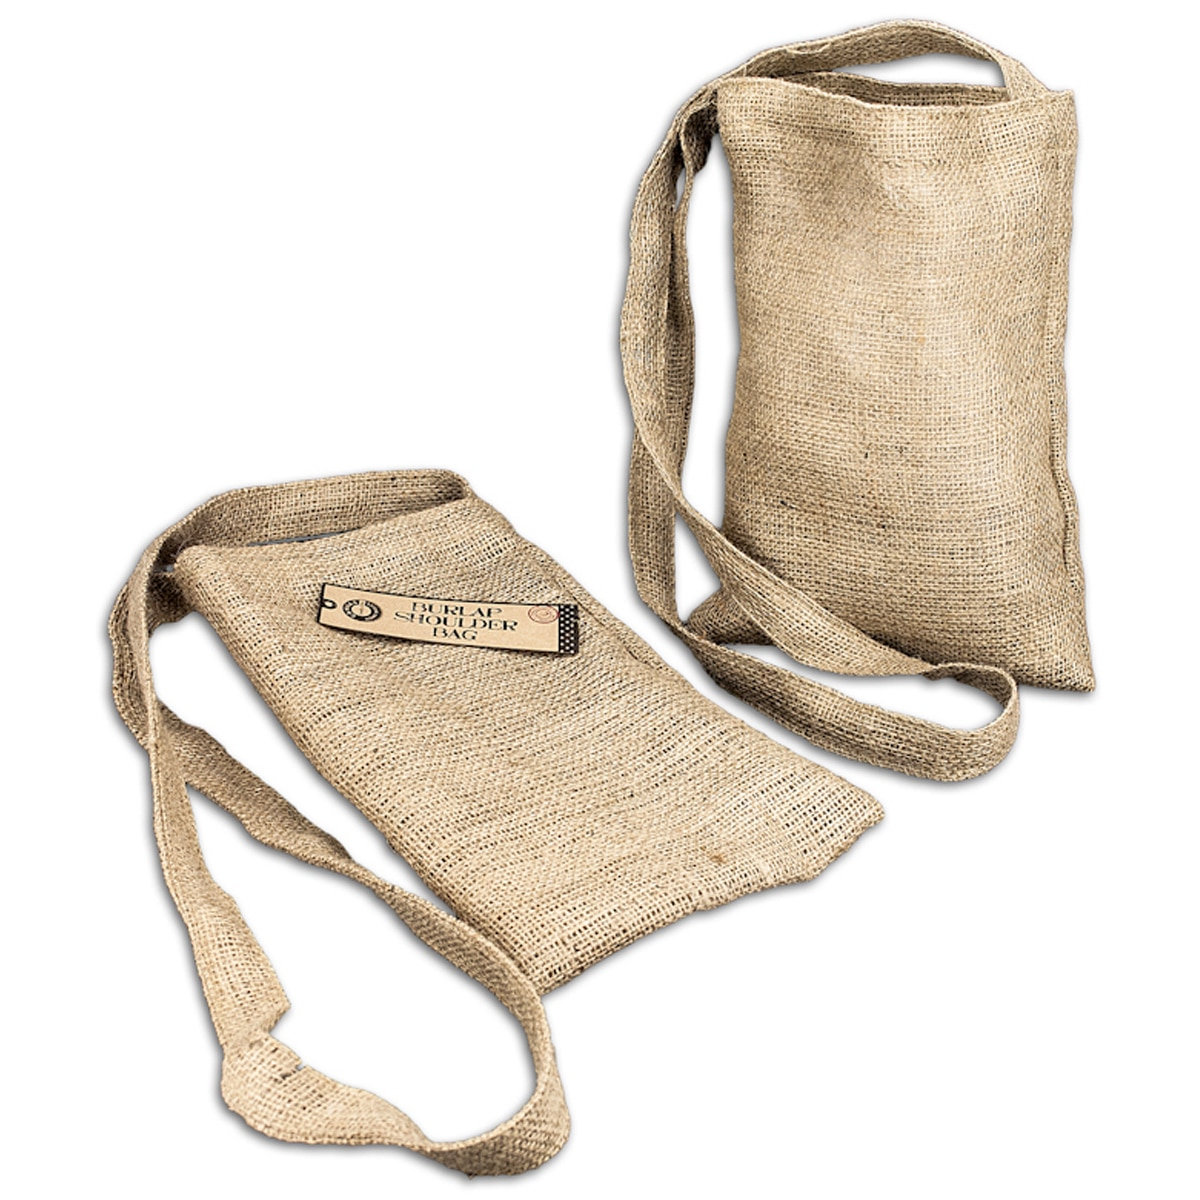 Canvas Corp CVS3327 Burlap Medium Shoulder Bag 8.5''X13''-Natural - image 2 of 2